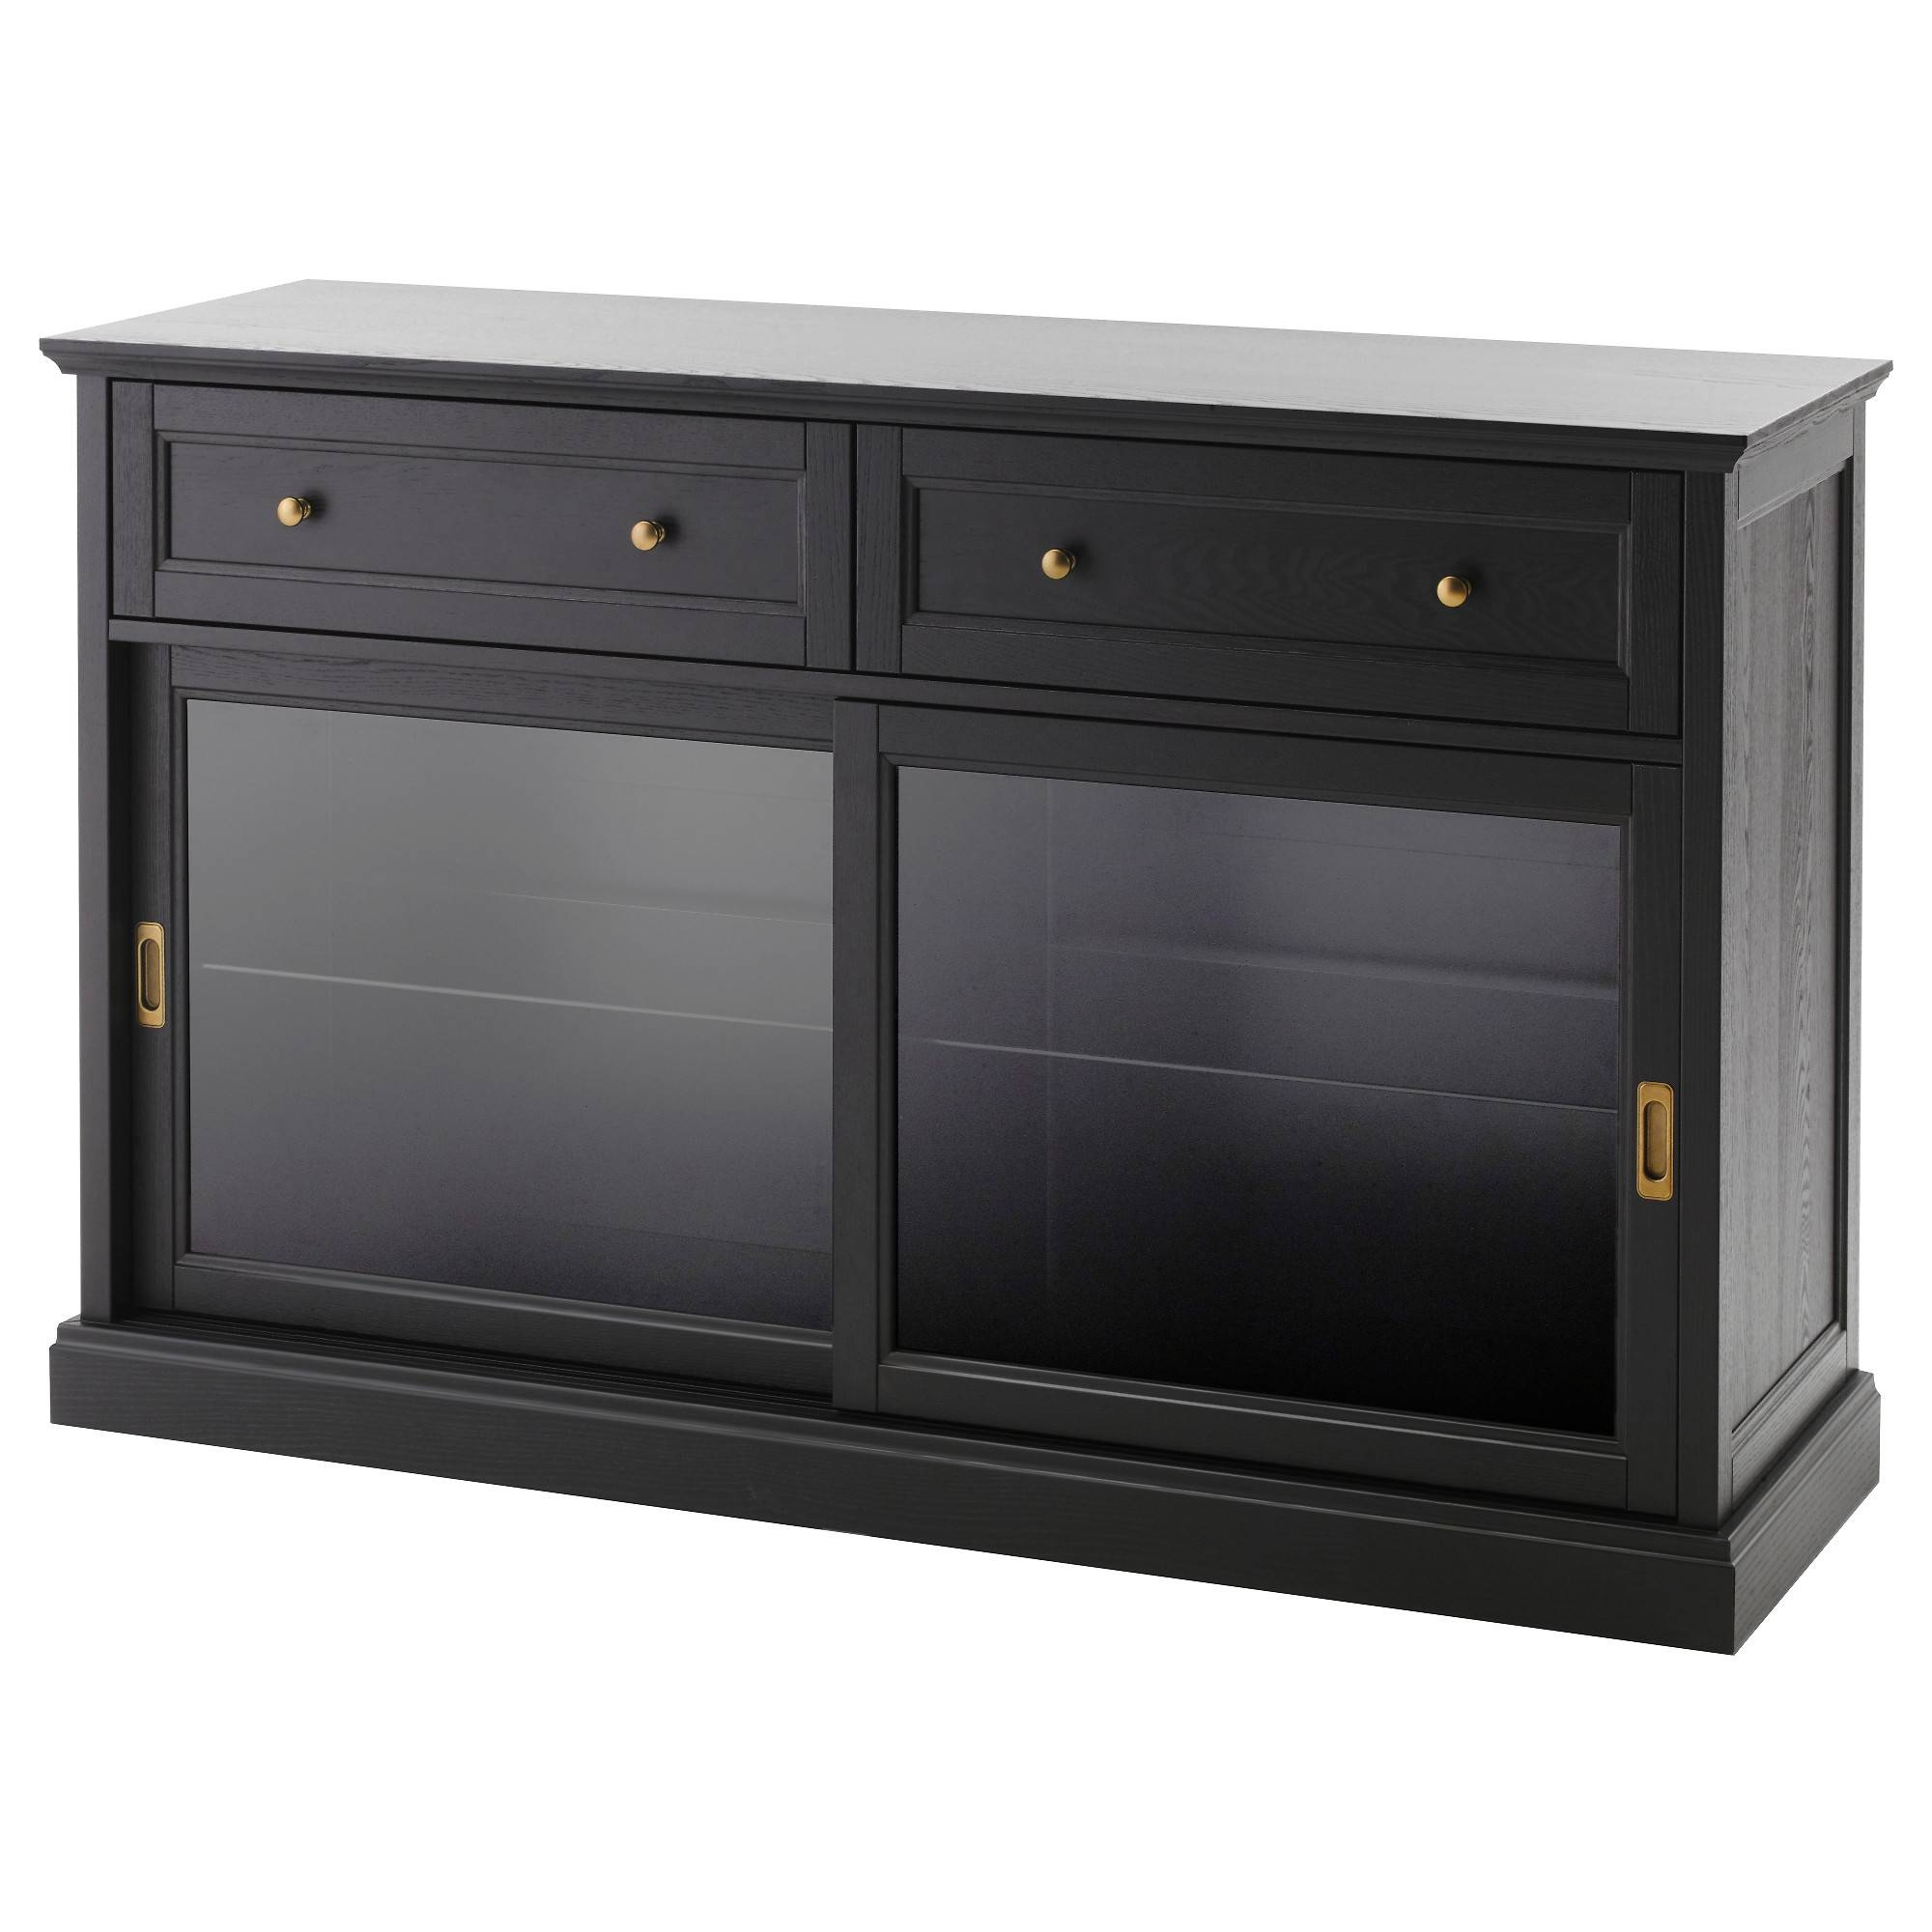 Unique Black Sideboard Buffet – Bjdgjy Within Most Up To Date Unique Sideboards And Buffets (#14 of 15)